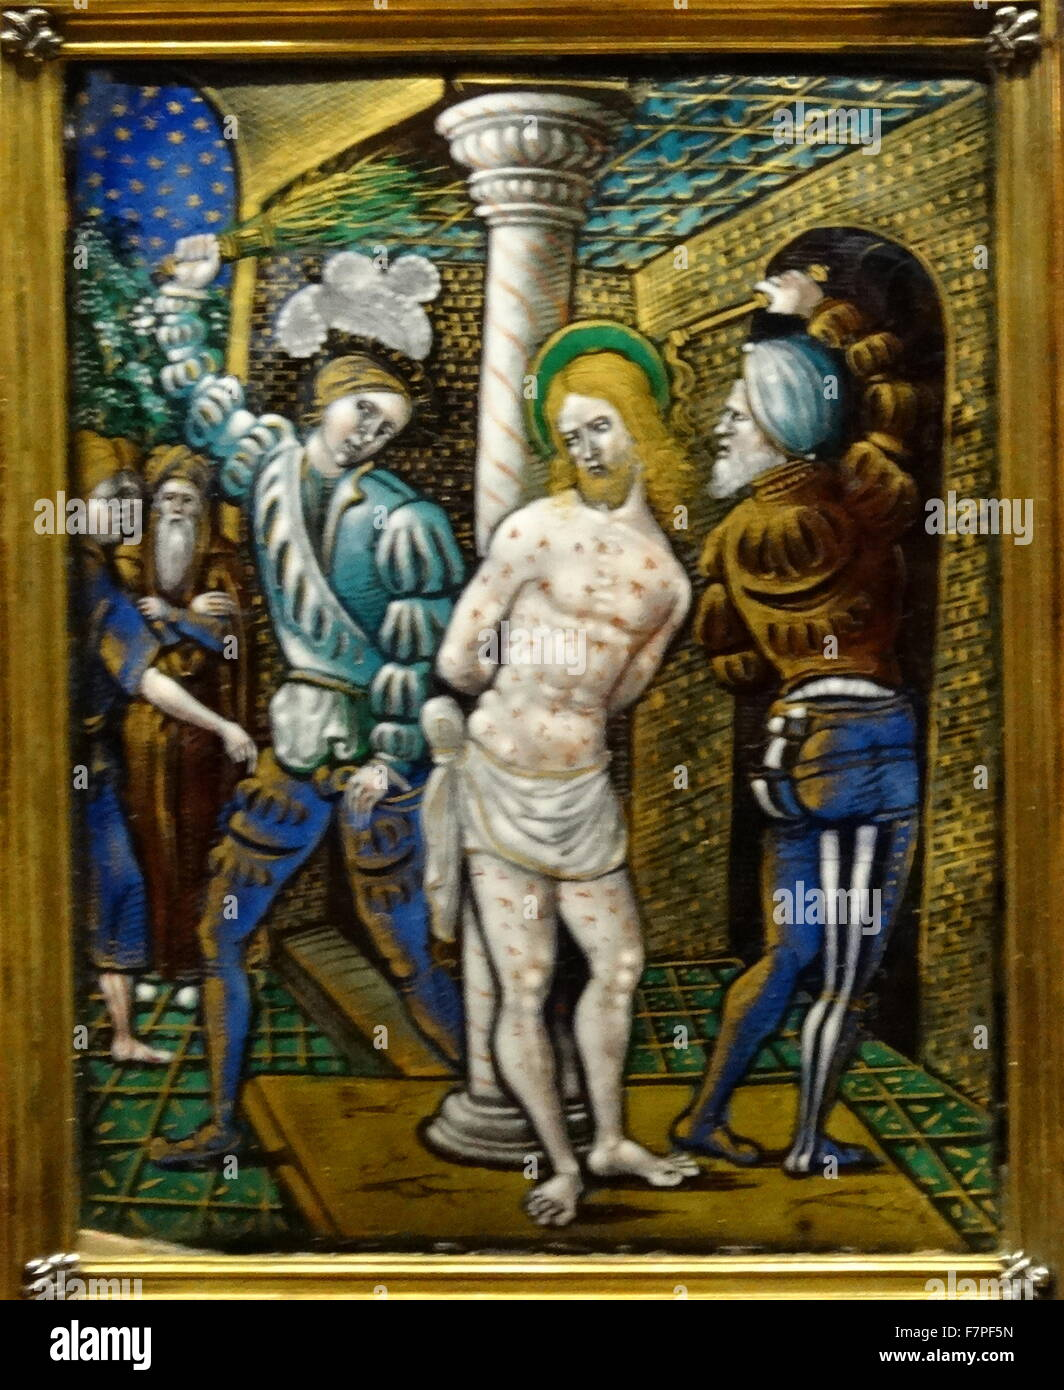 Episodes from the Life and Passion of Christ. Dated 16th Century - Stock Image